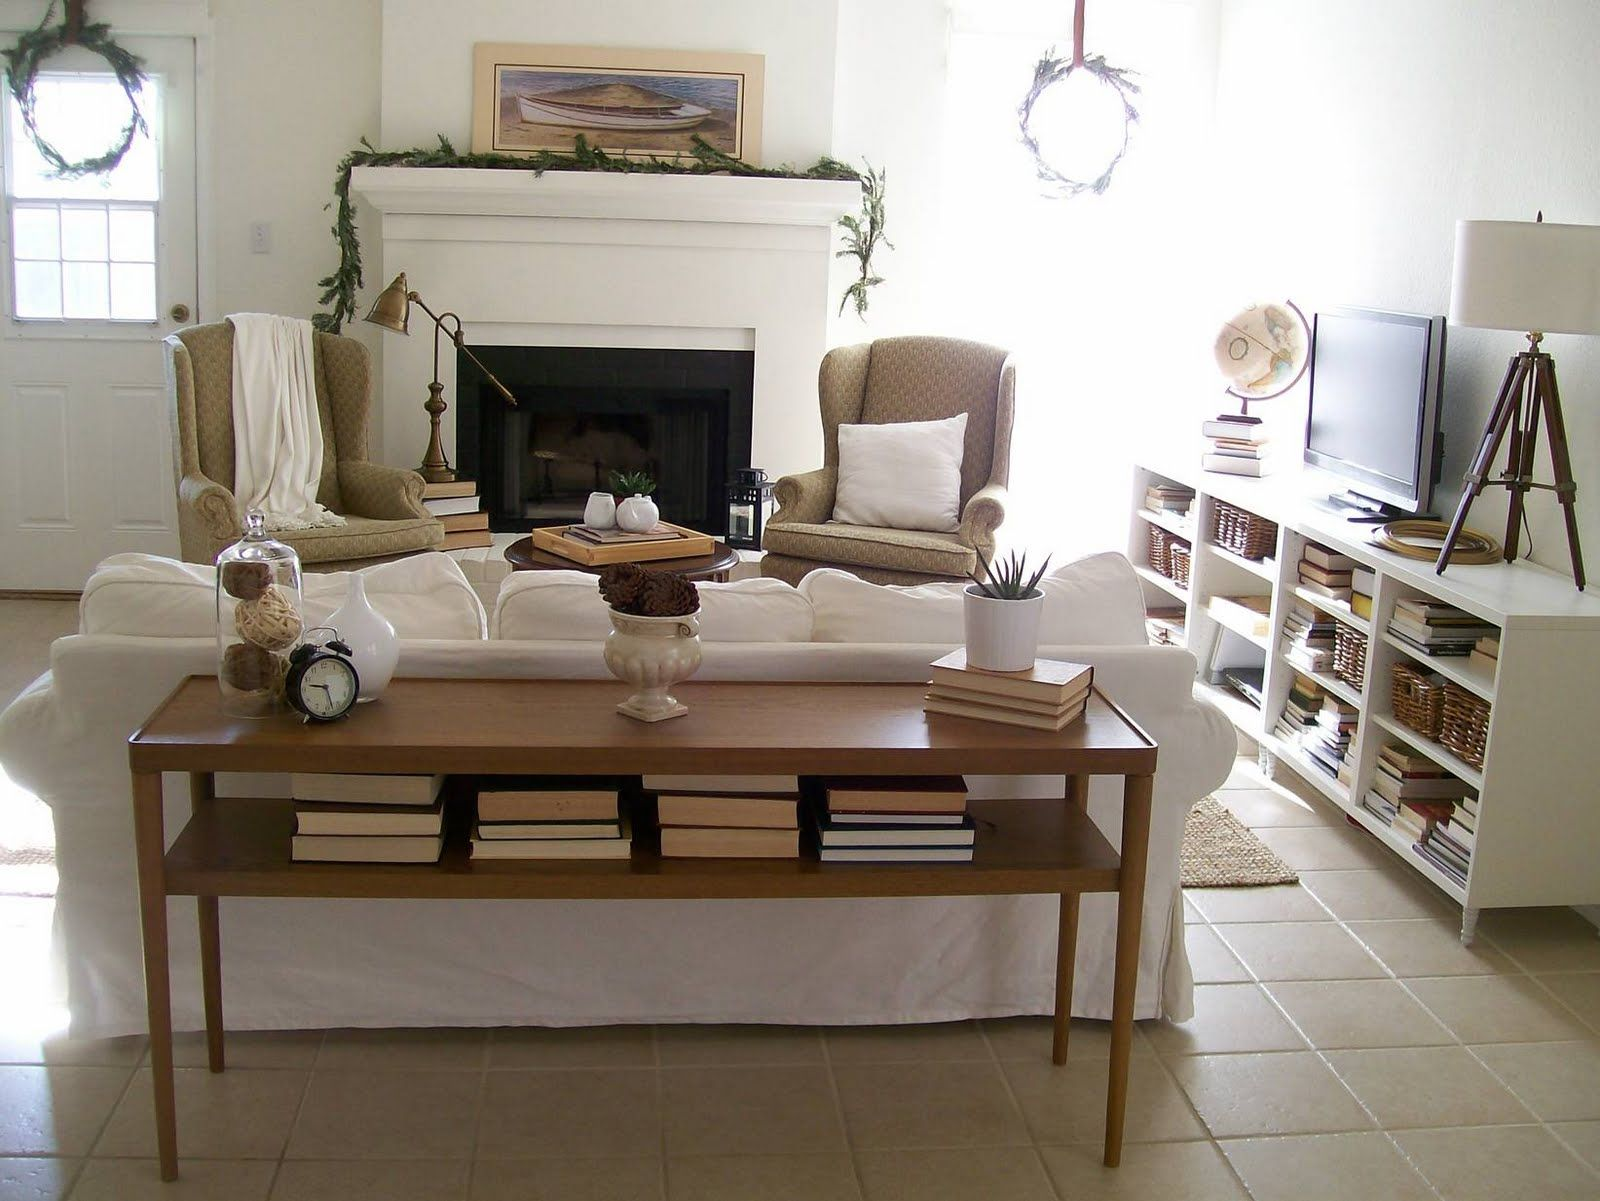 The Pear Tree Cottage Fireplace Makeover With Details and Before